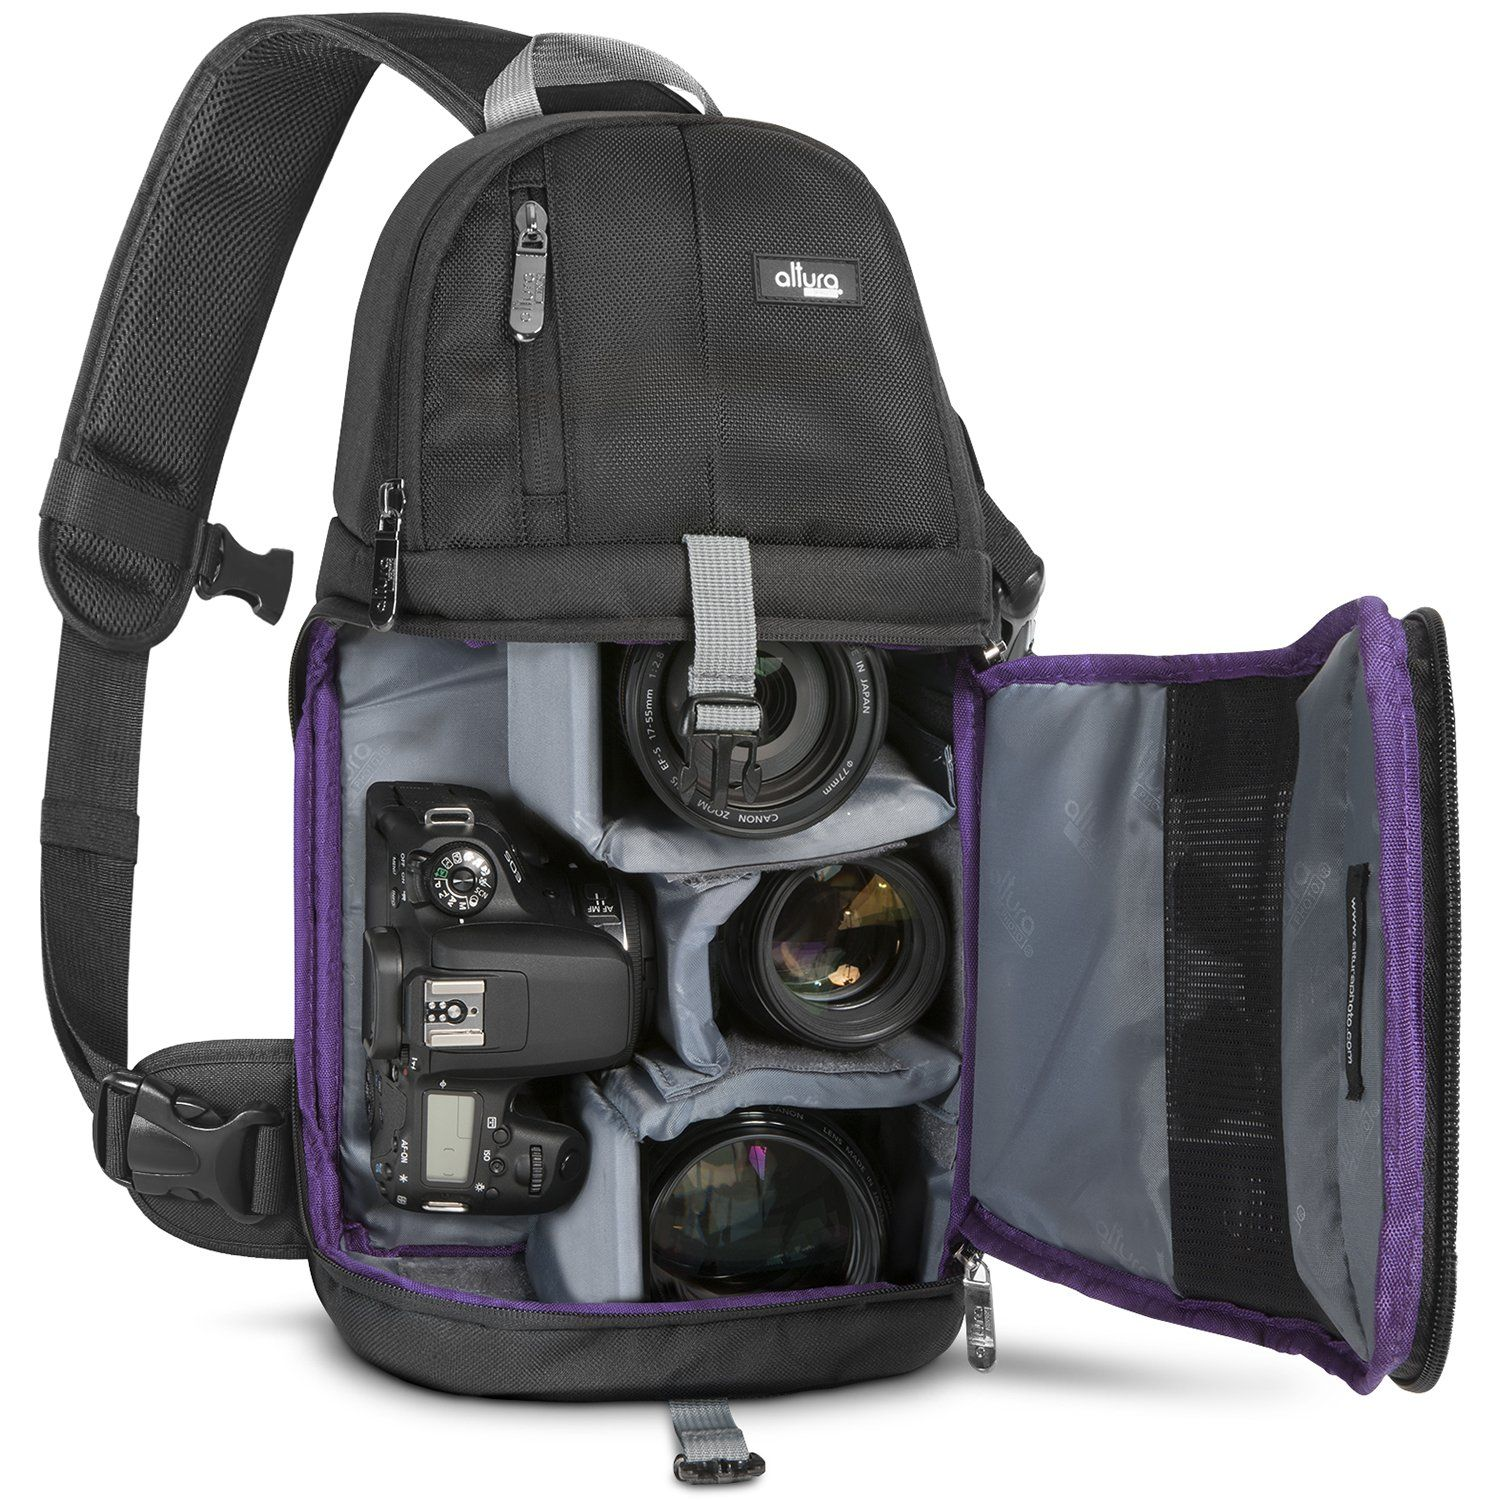 Altura photo camera sling backpack for dslr and mirrorless